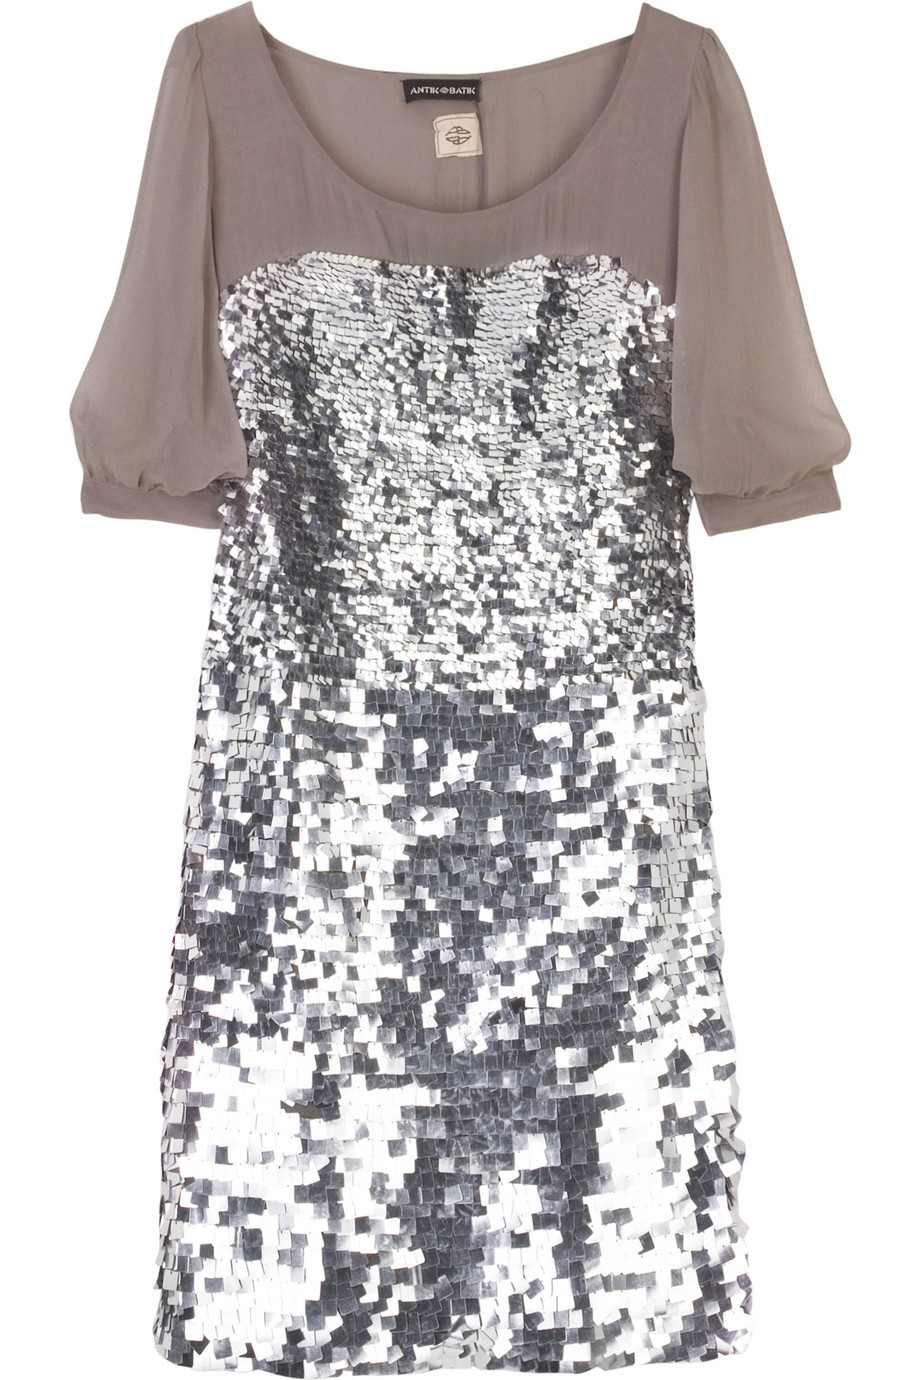 Antik Batik Sigma sequined dress | NET-A-PORTER.COM from net-a-porter.com